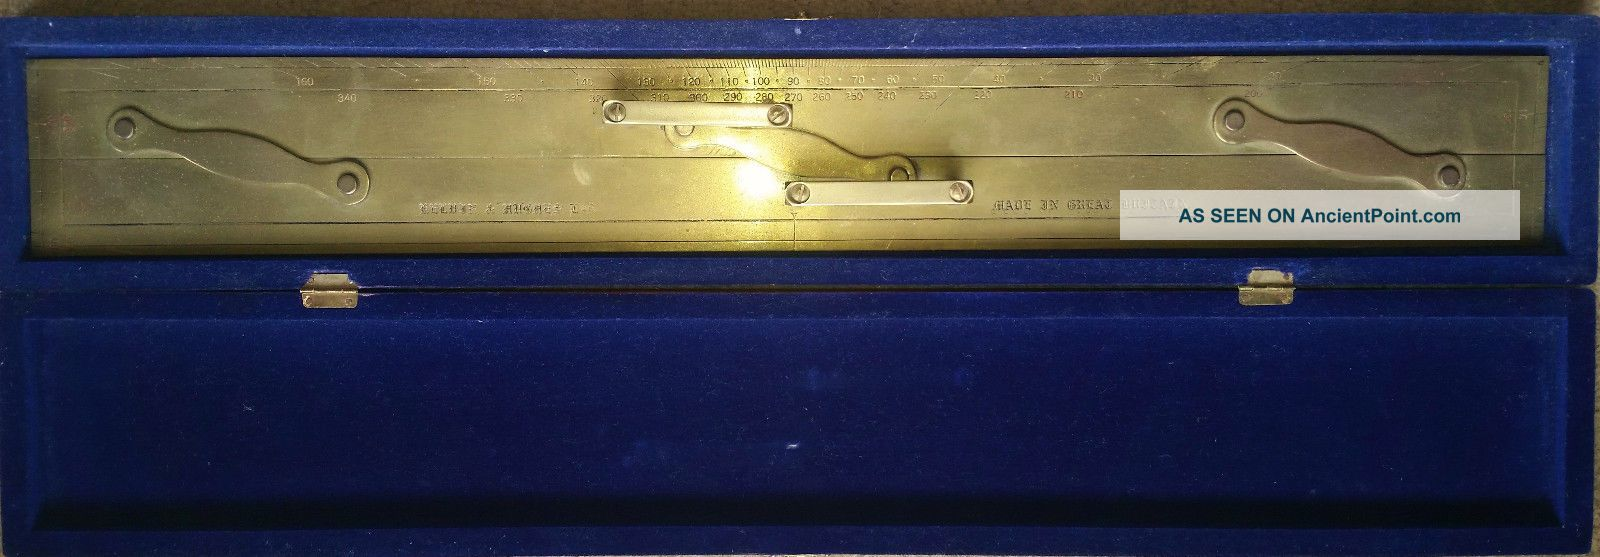 Kelvin & Hughes Brass Parallel Nautical Navigation Ruler - Orig Wood Box - England Parallel Rules photo